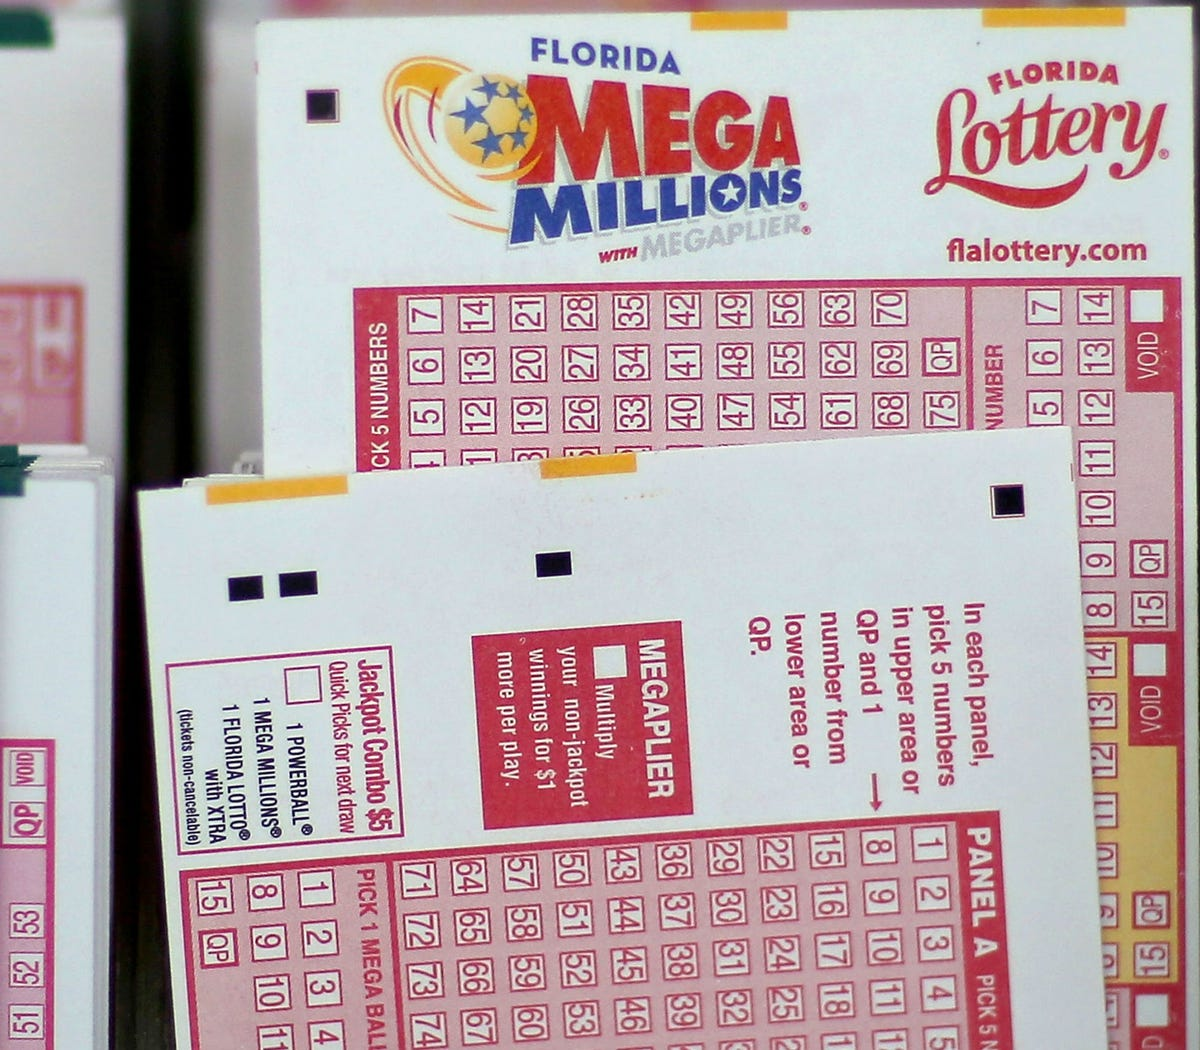 Florida Lottery is not the education jackpot you may think